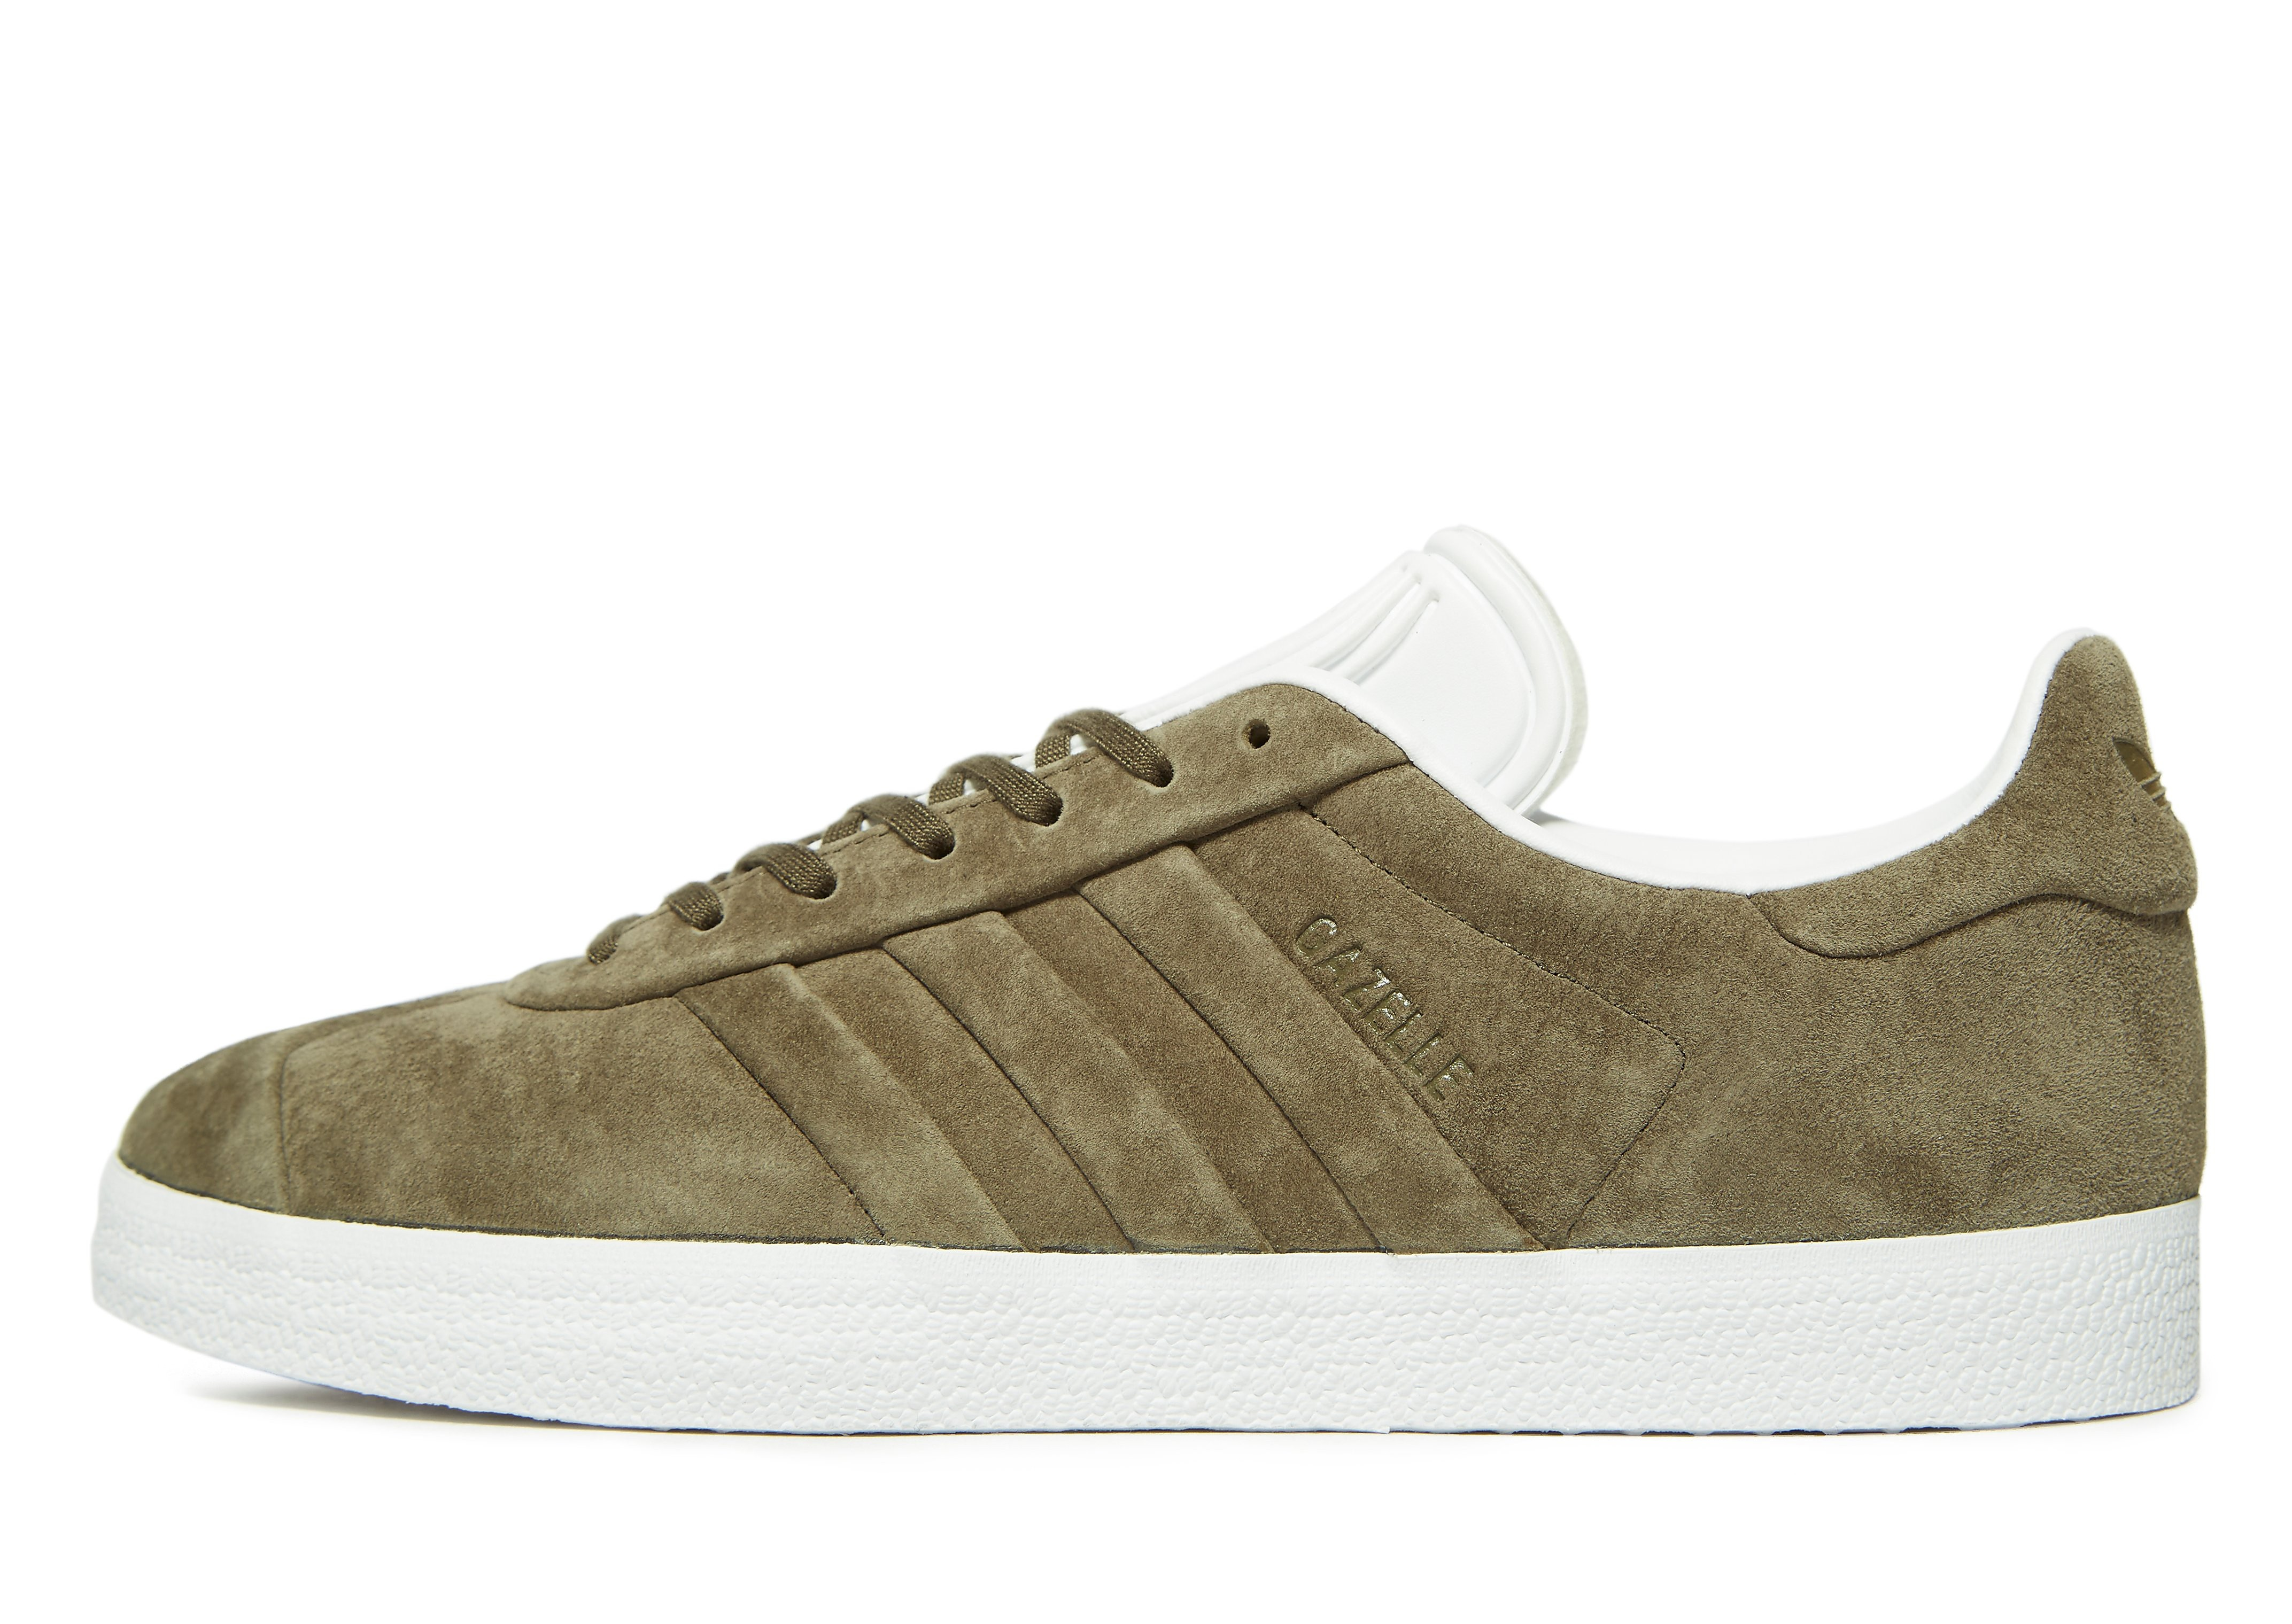 adidas Originals Gazelle Stitch and Turn